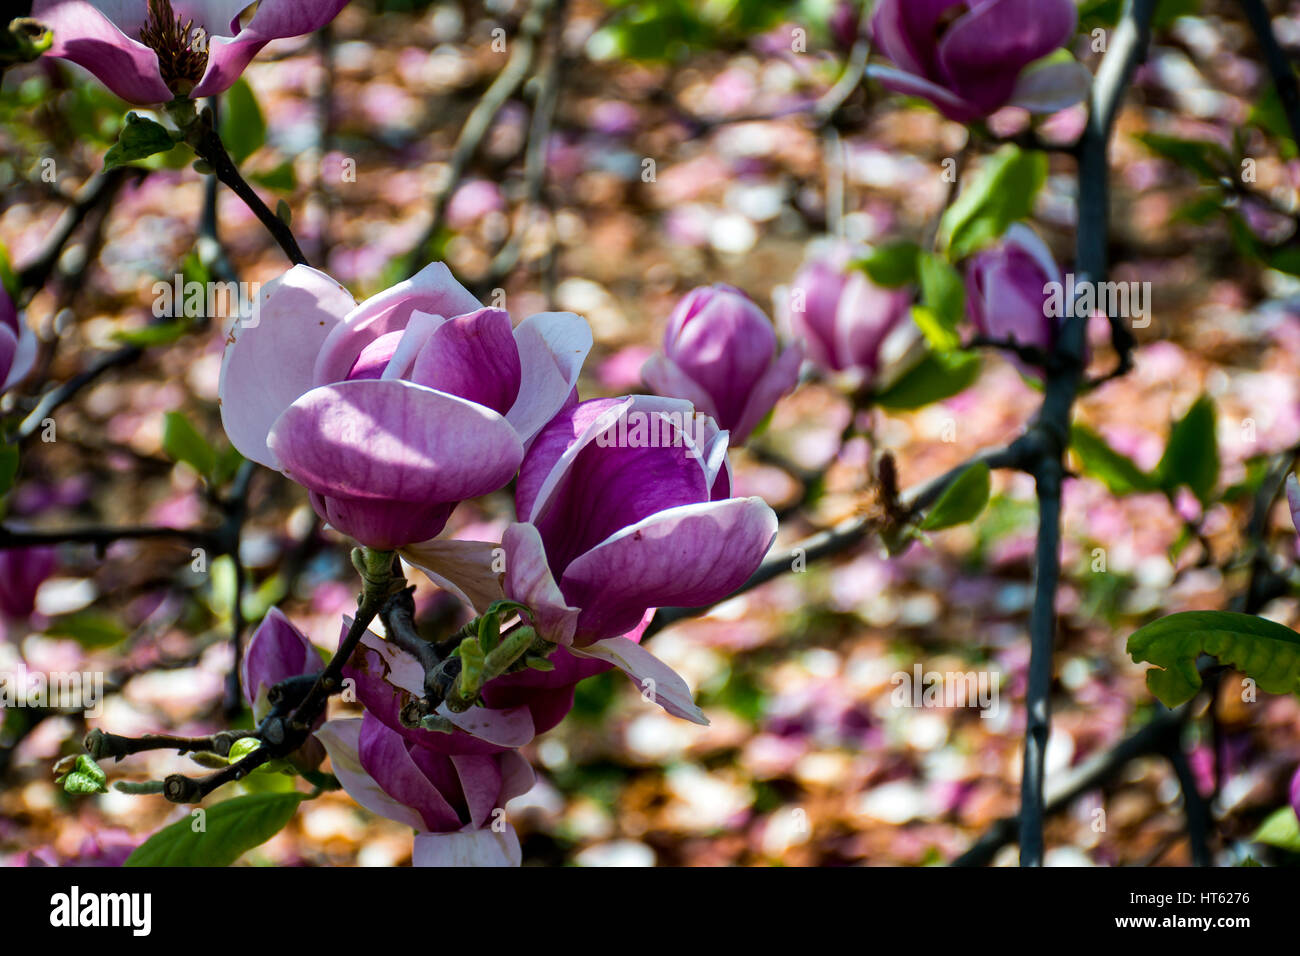 Bloomy Magnolia Tree With Big Pink Flowers Blossom Stock Photo